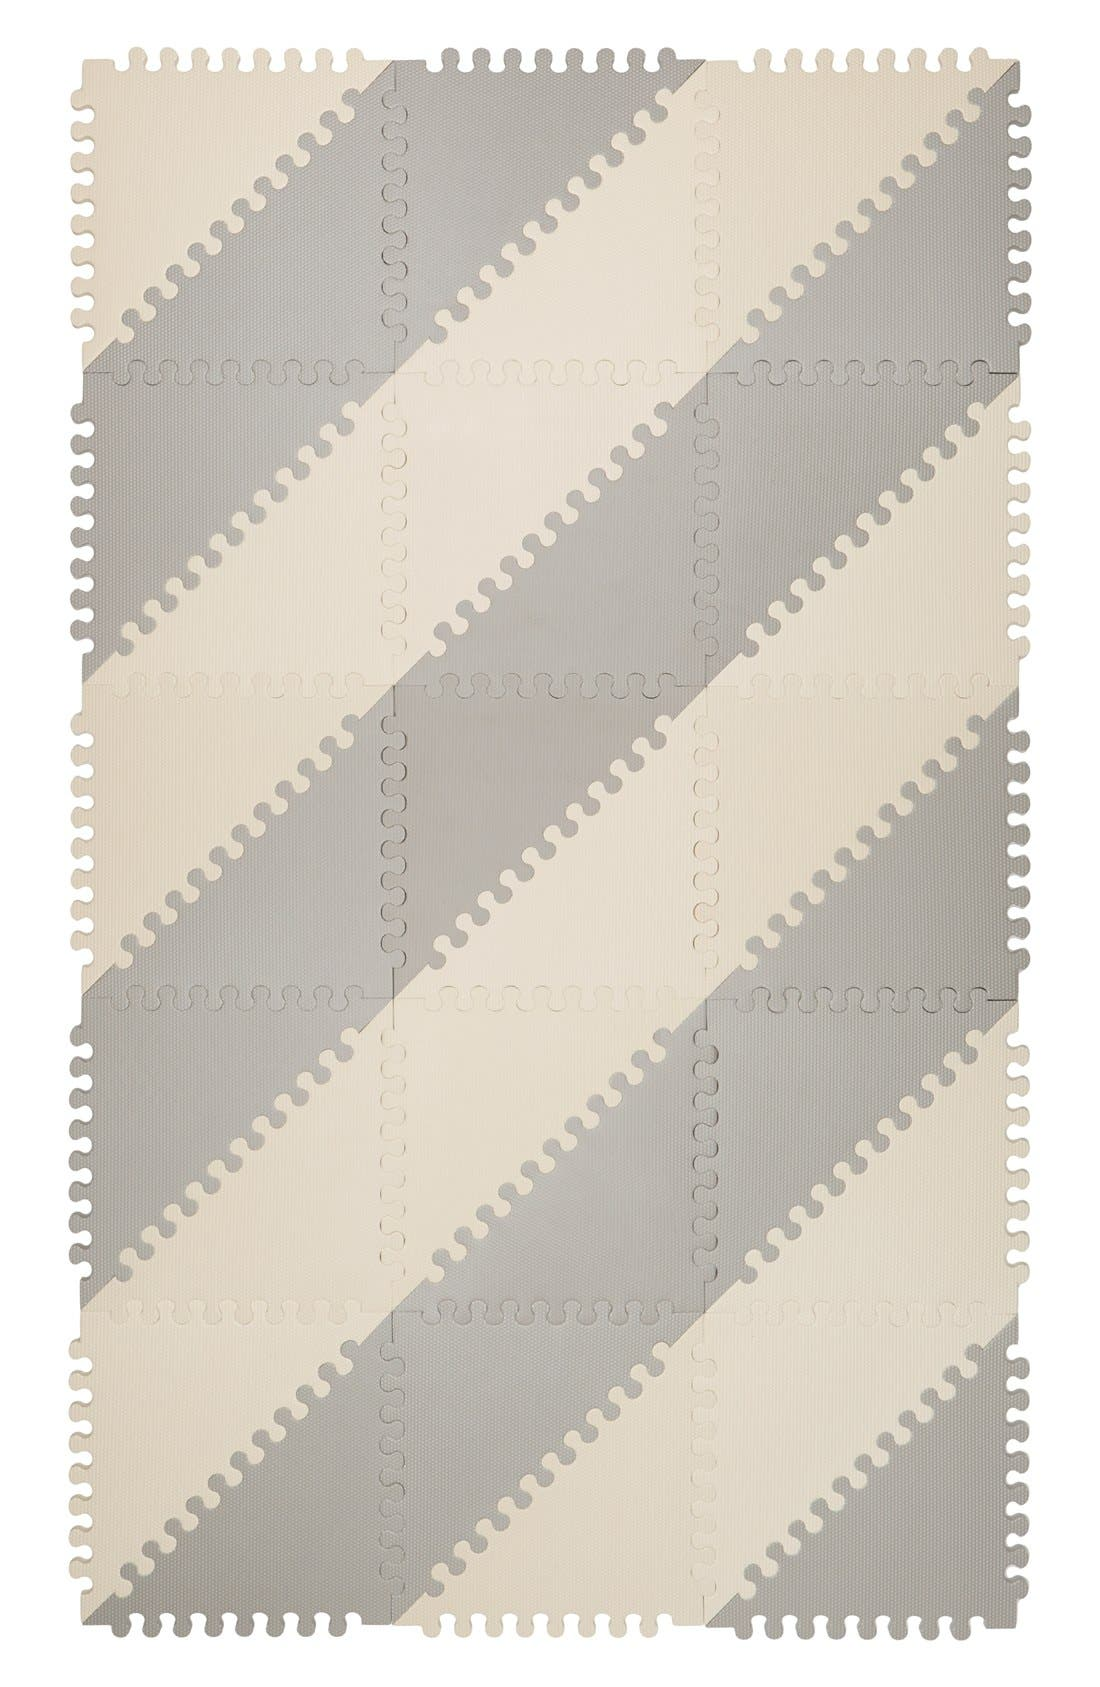 'PLAYSPOTS' Foam Floor Tiles,                         Main,                         color, 020